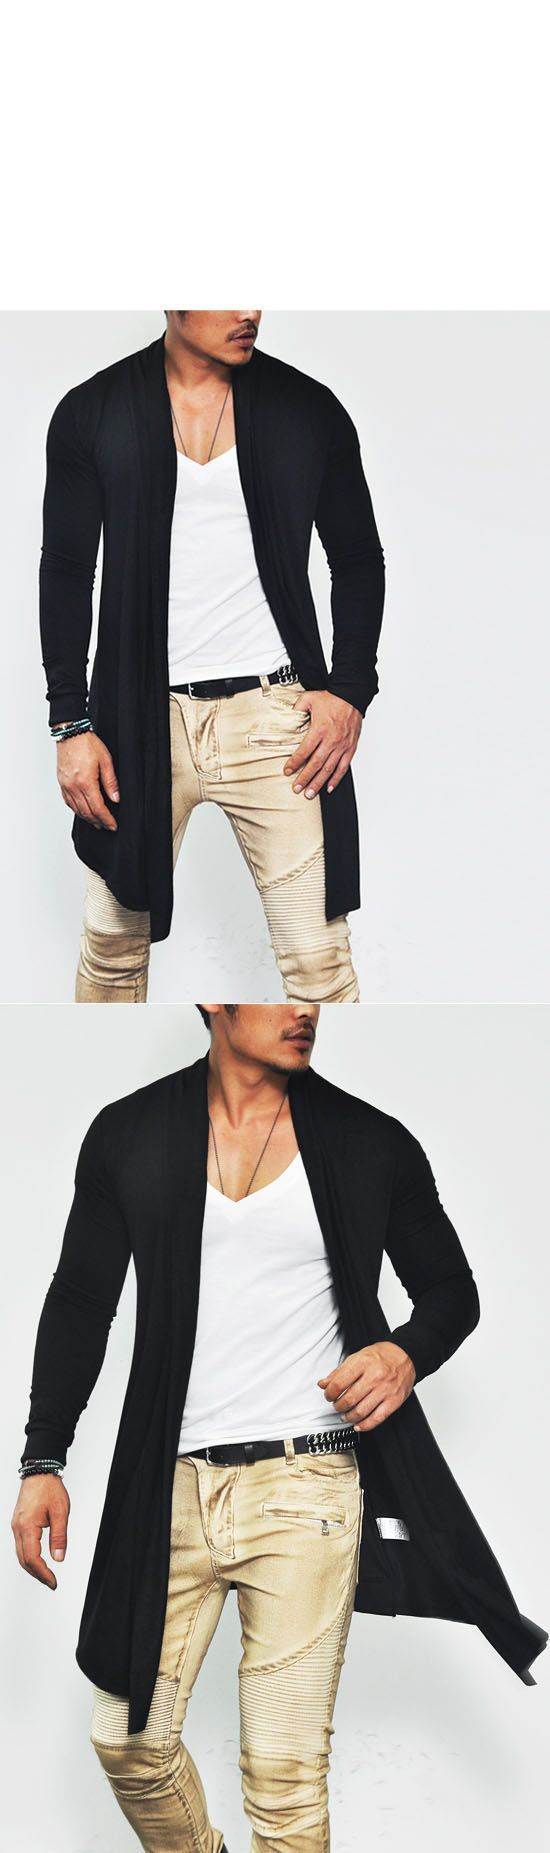 Outerwear :: Avant-garde Slim Open Shawl Long-Cardigan 45 - Mens Fashion Clothing For An Attractive Guy Look